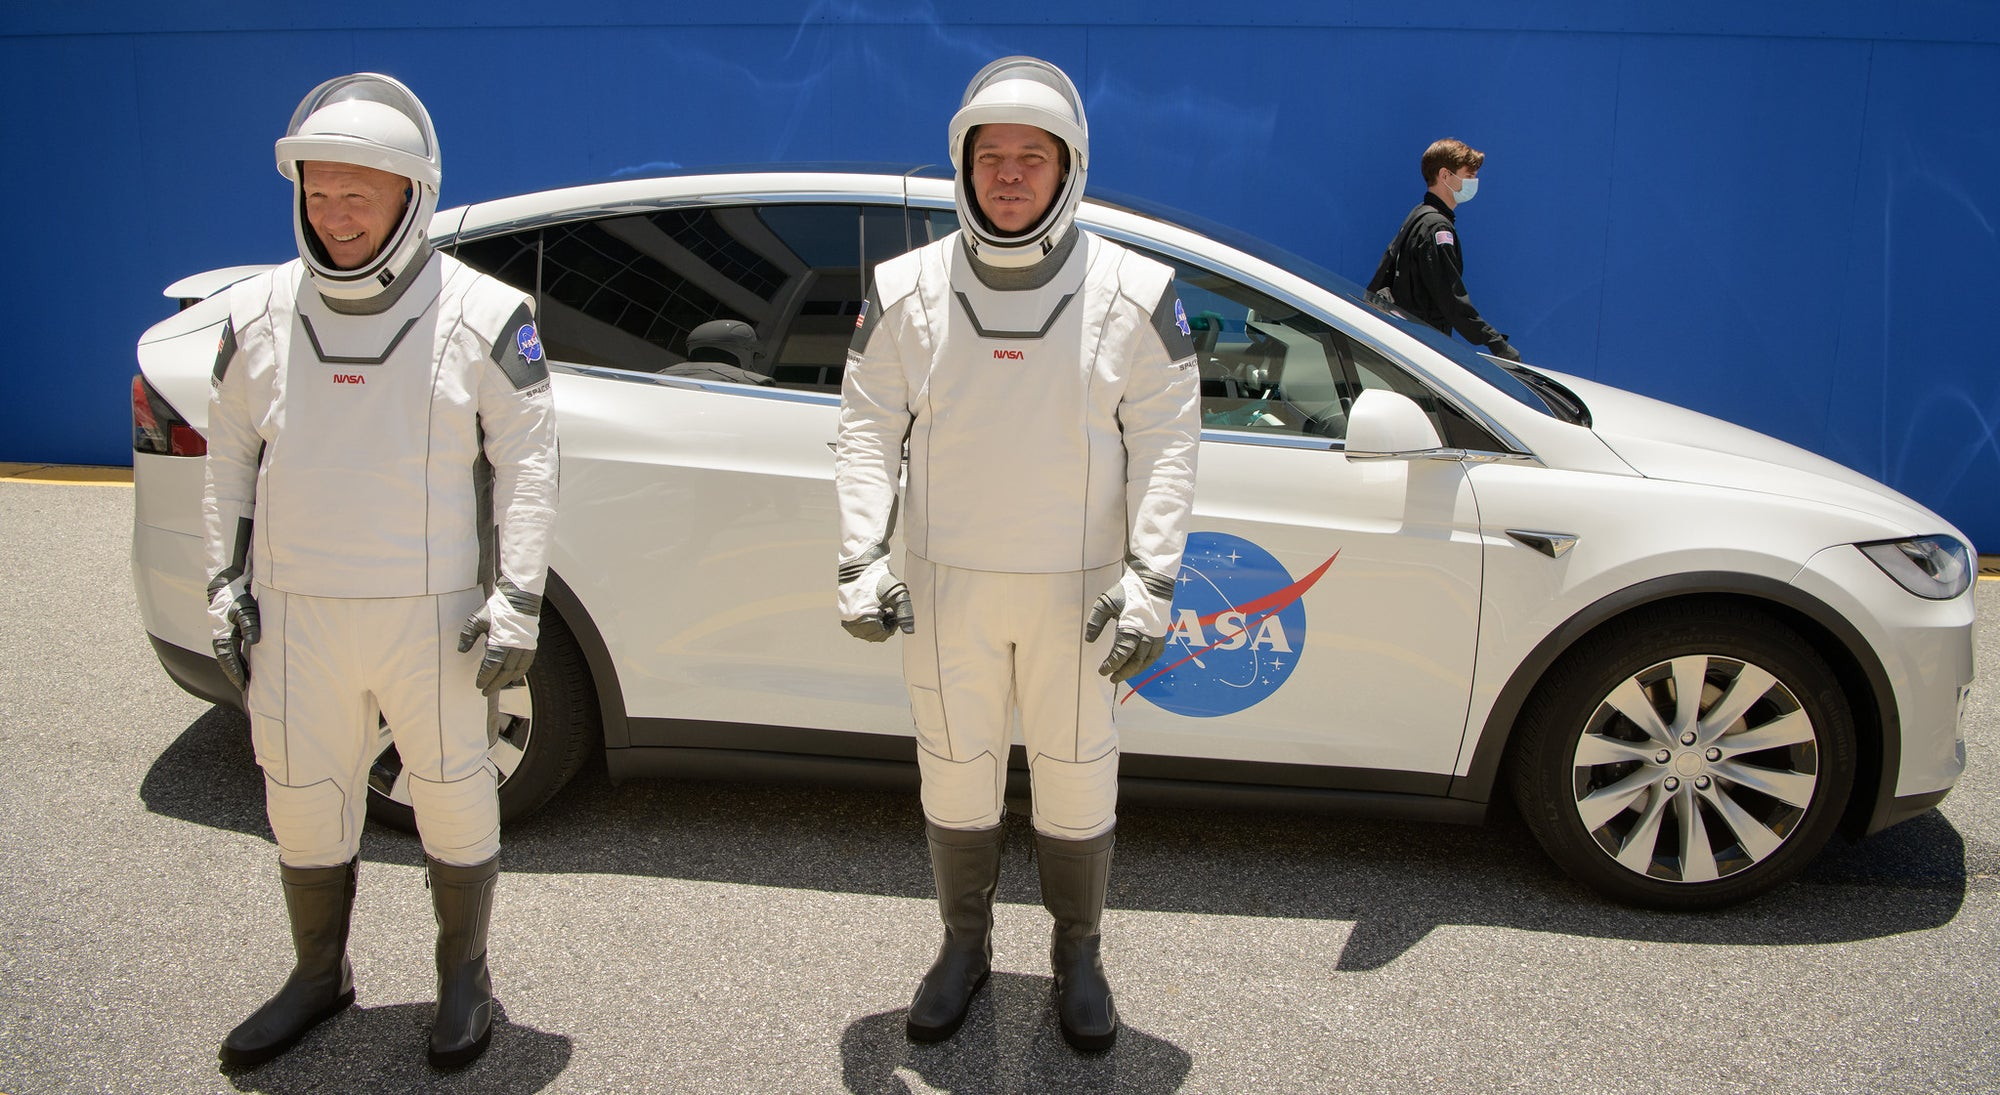 NASA Astronauts arrive in a Tesla to participate in Launch Dress Rehearsal for SpaceX mission